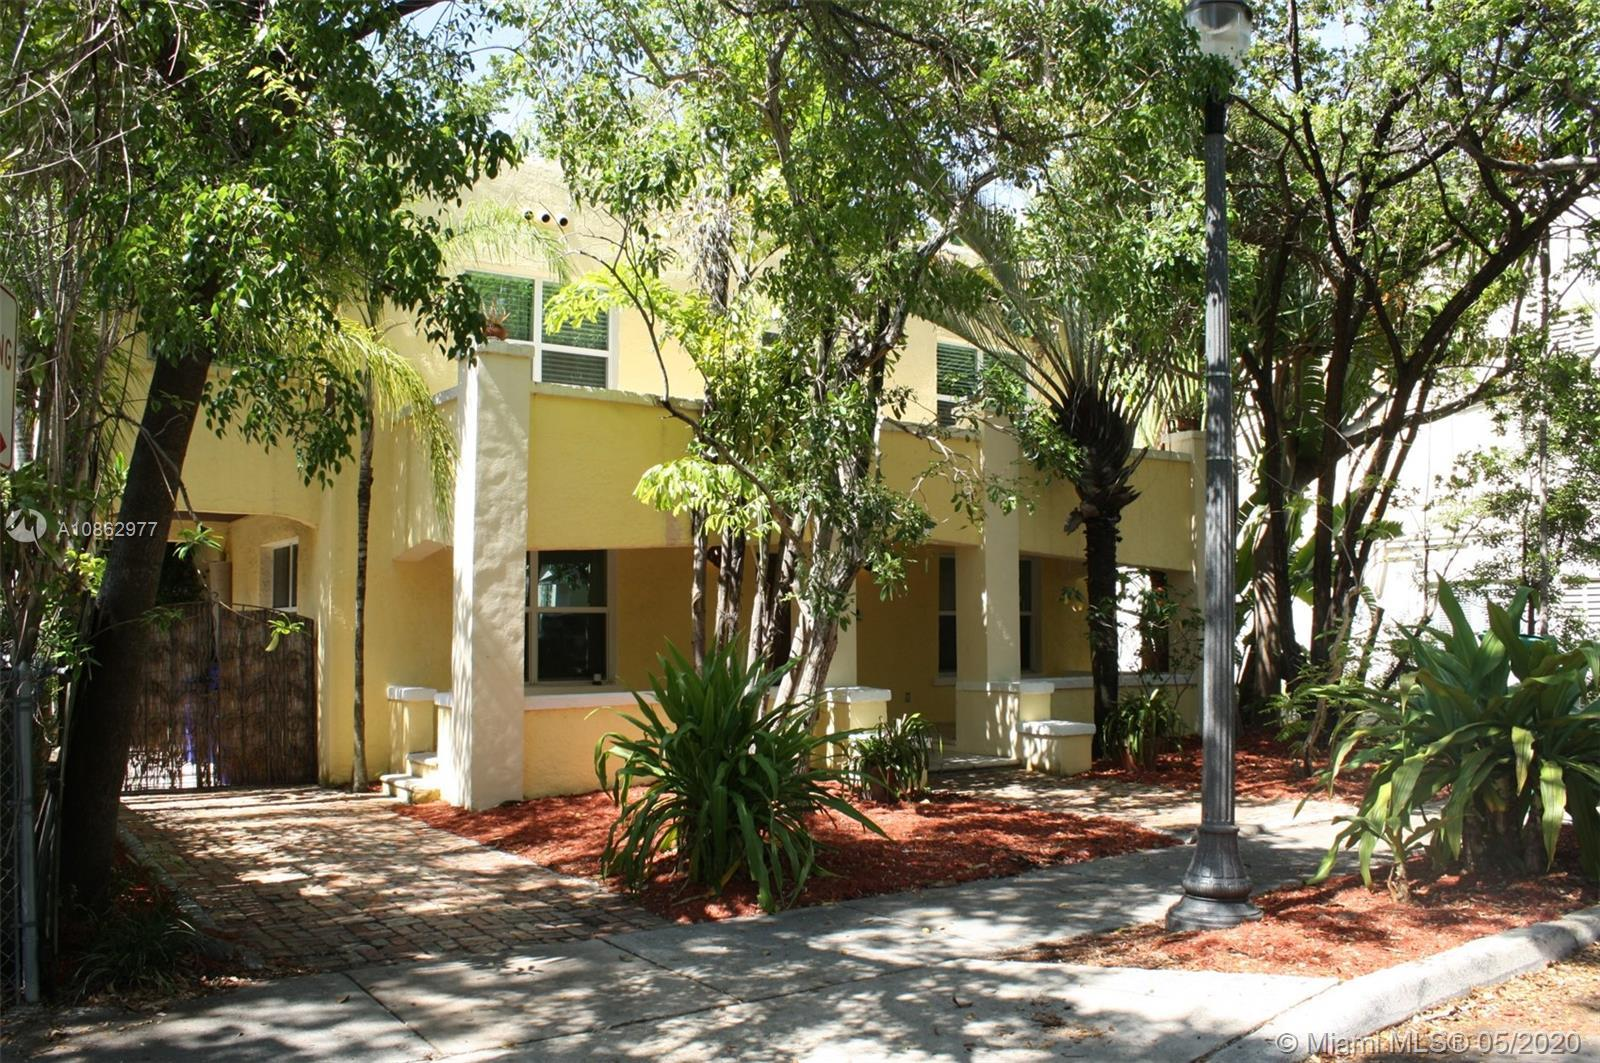 Very Cozy Spanish house in the heart of Design District with Mother in Law private cottage. Two sto